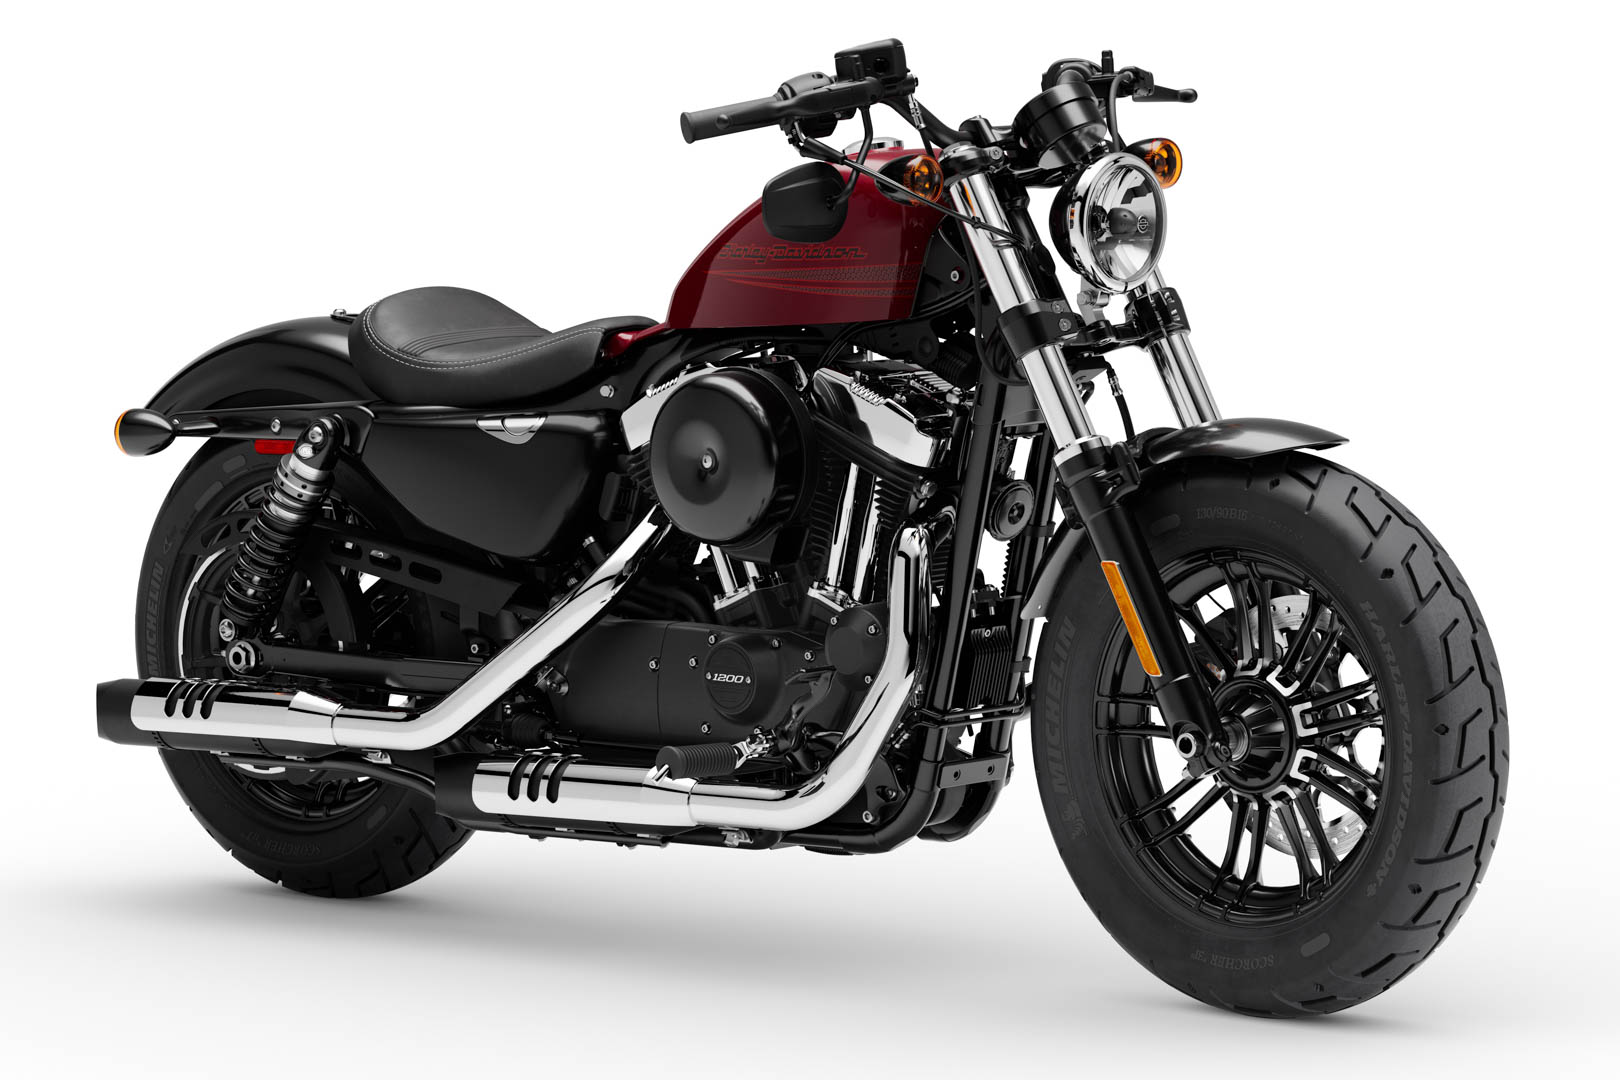 Harley Davidson Sportster Lineup Cut For 2020 Ultimate Motorcycling